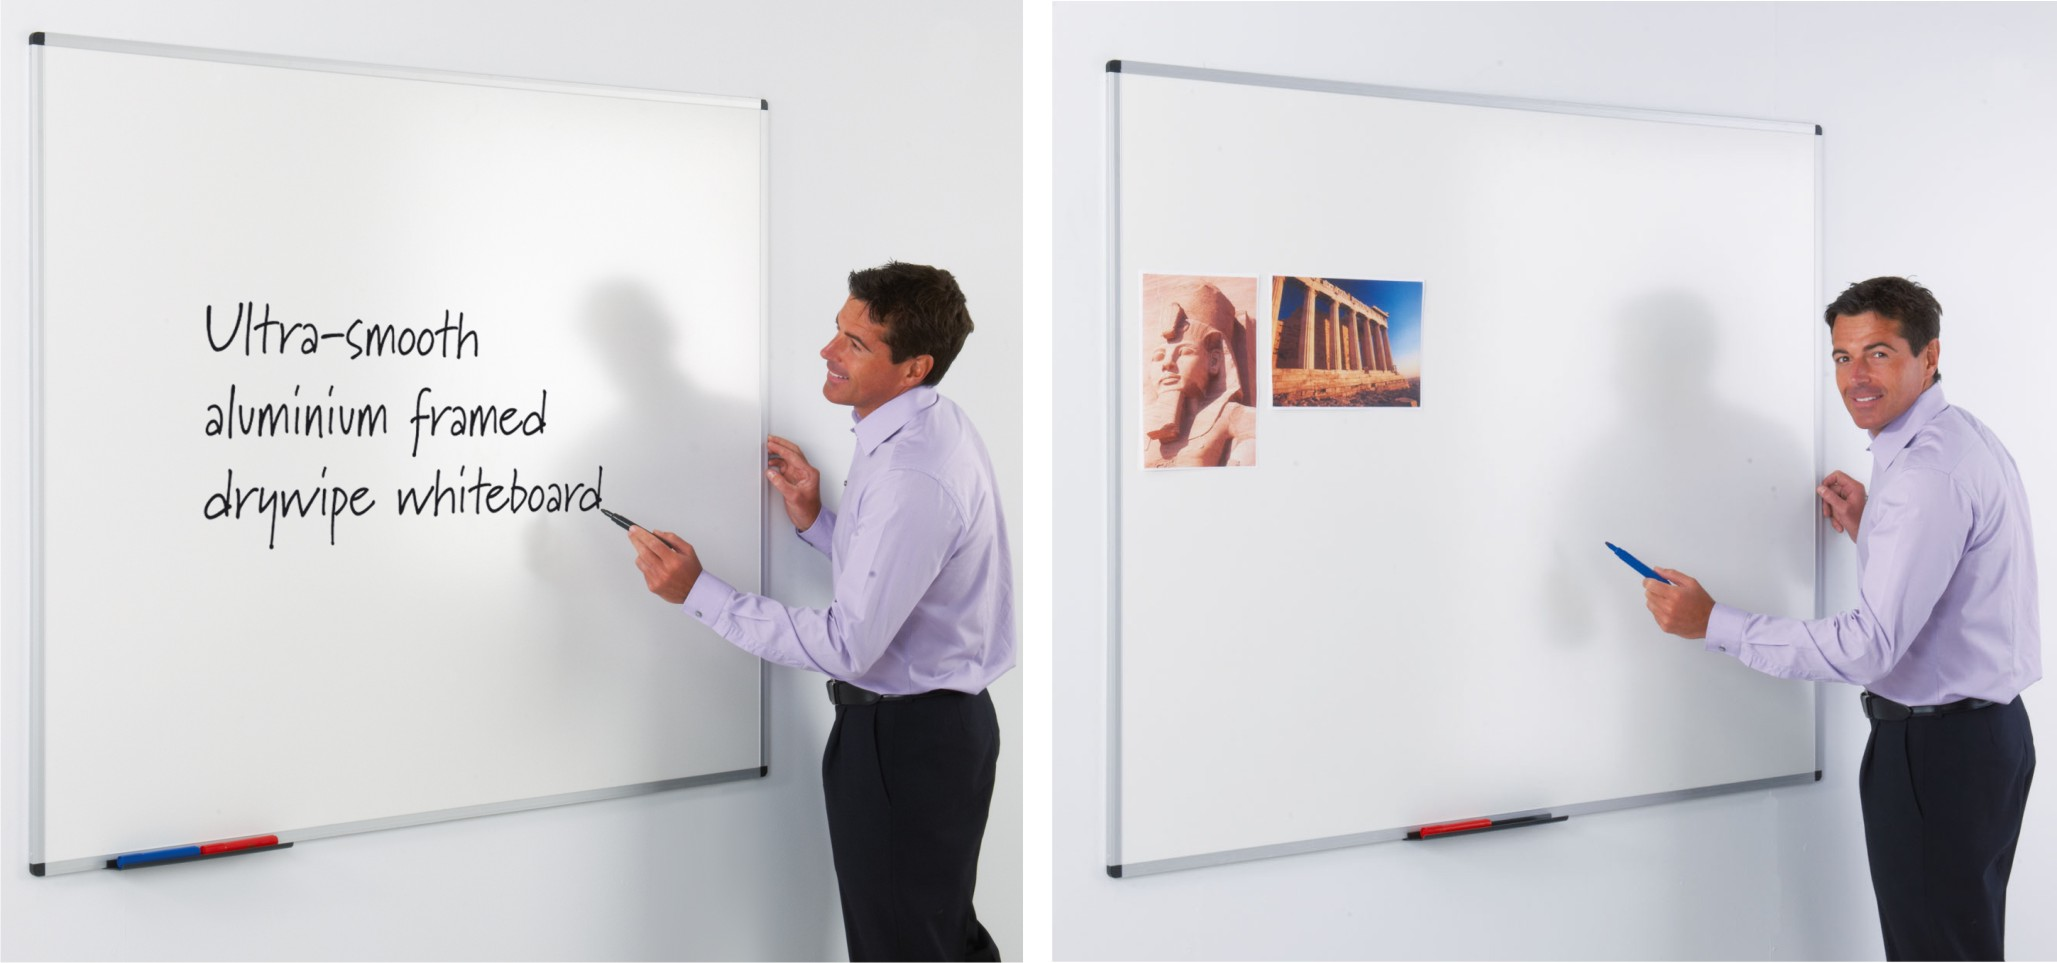 magnetic drywipe whiteboards